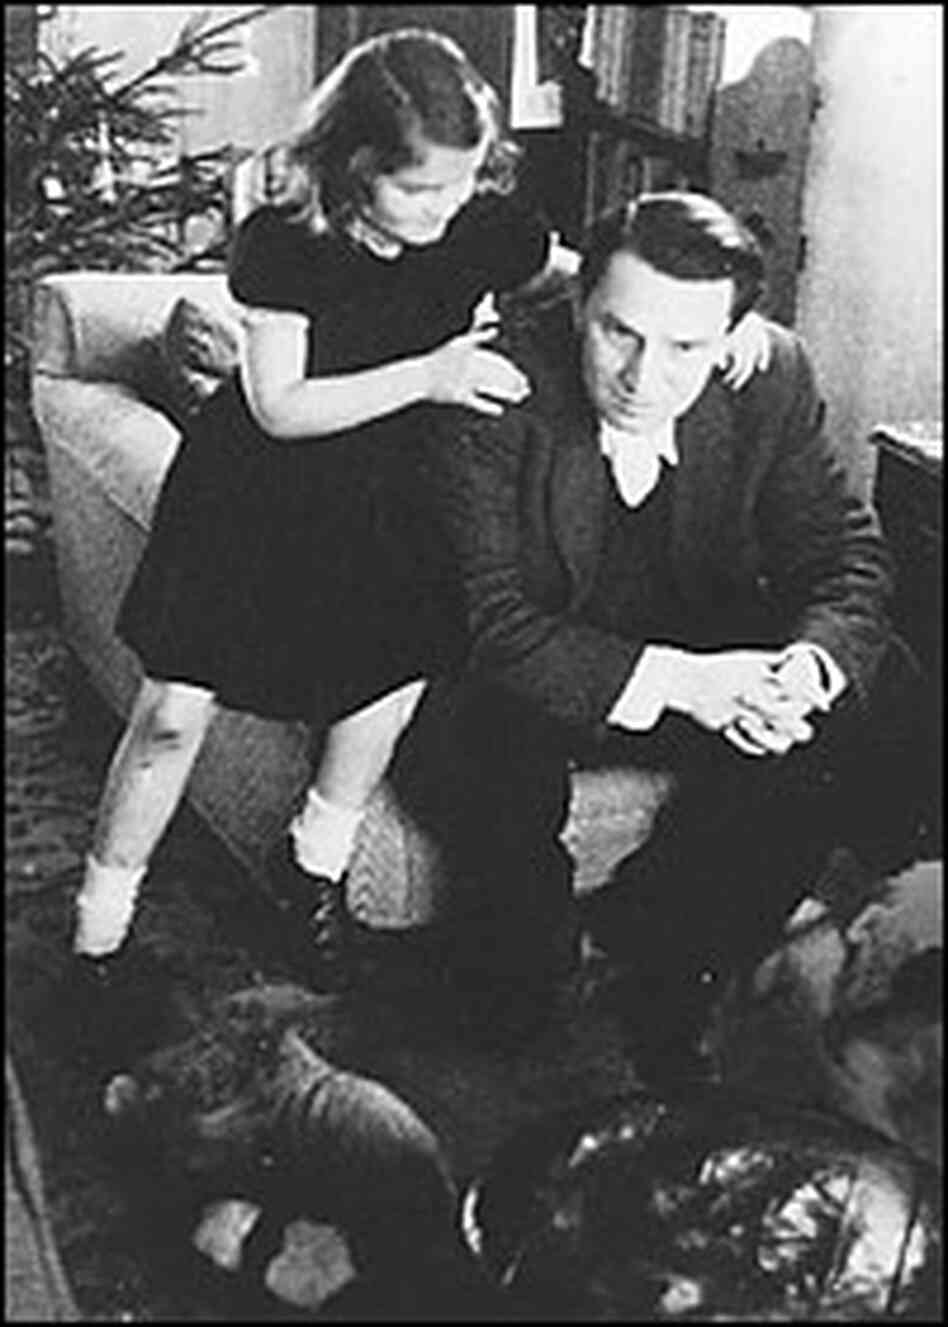 Madeleine Albright (nee Korbel) and her father Josef Korbel in 1943